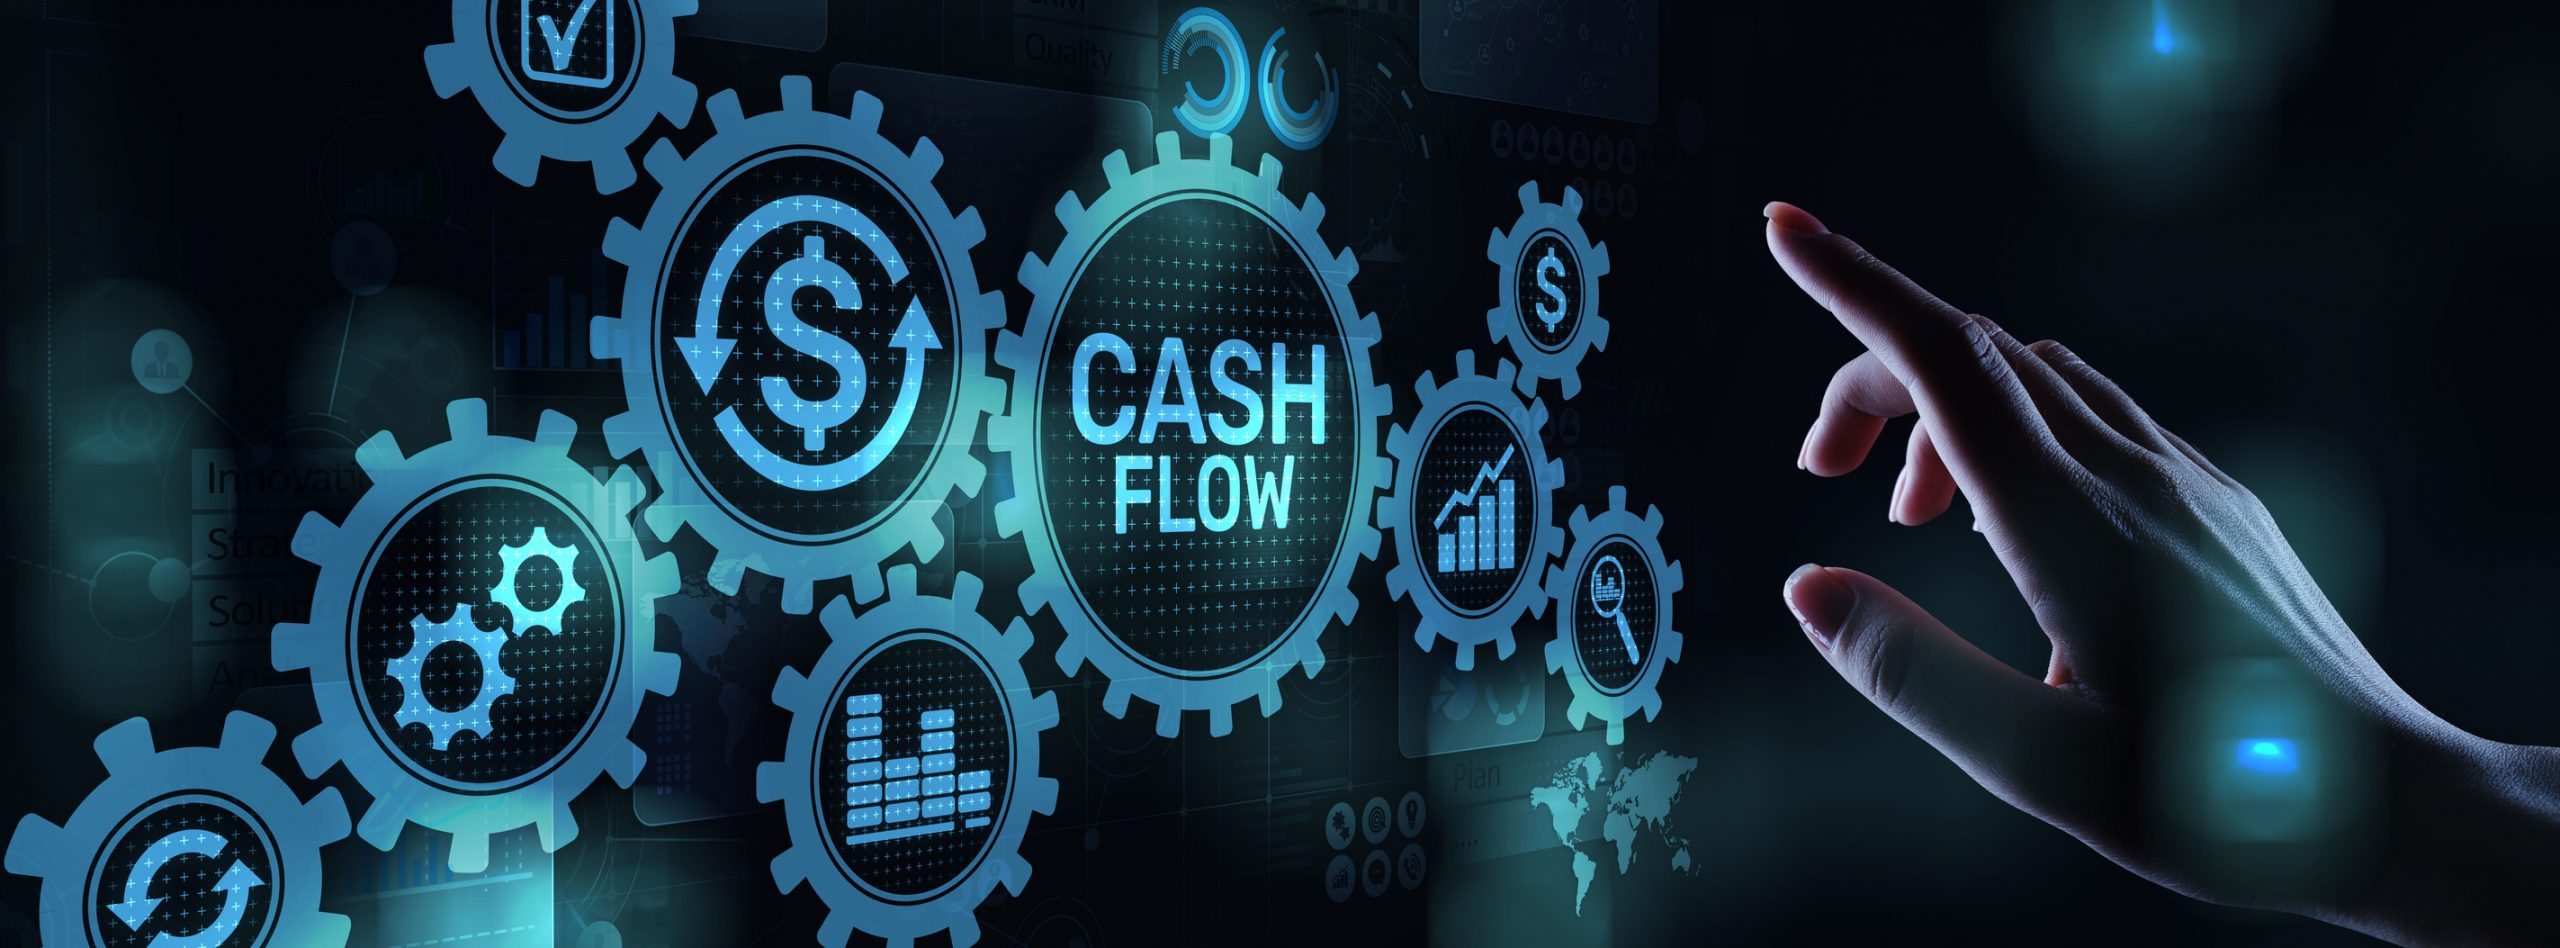 Cash flow button on virtual screen. Business Tehcnology concept.